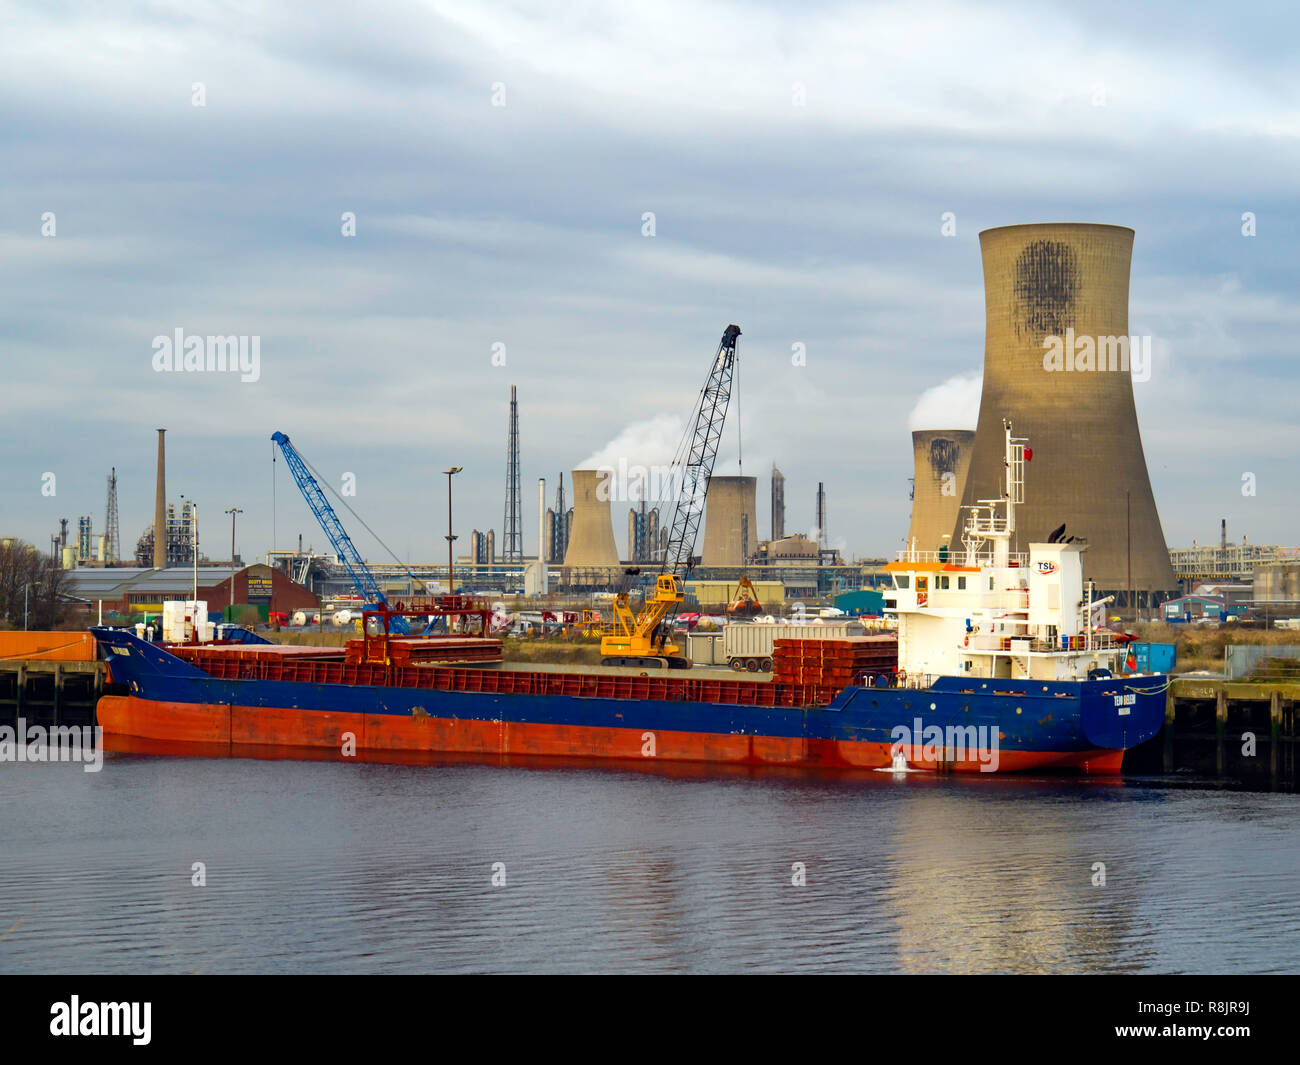 Portugese Flag General Cargo ship TEJO BELEM IMO 9368417 moored at Bamlets Wharf at Billingham River Tees dischsrging Cargo using a grab crane. - Stock Image